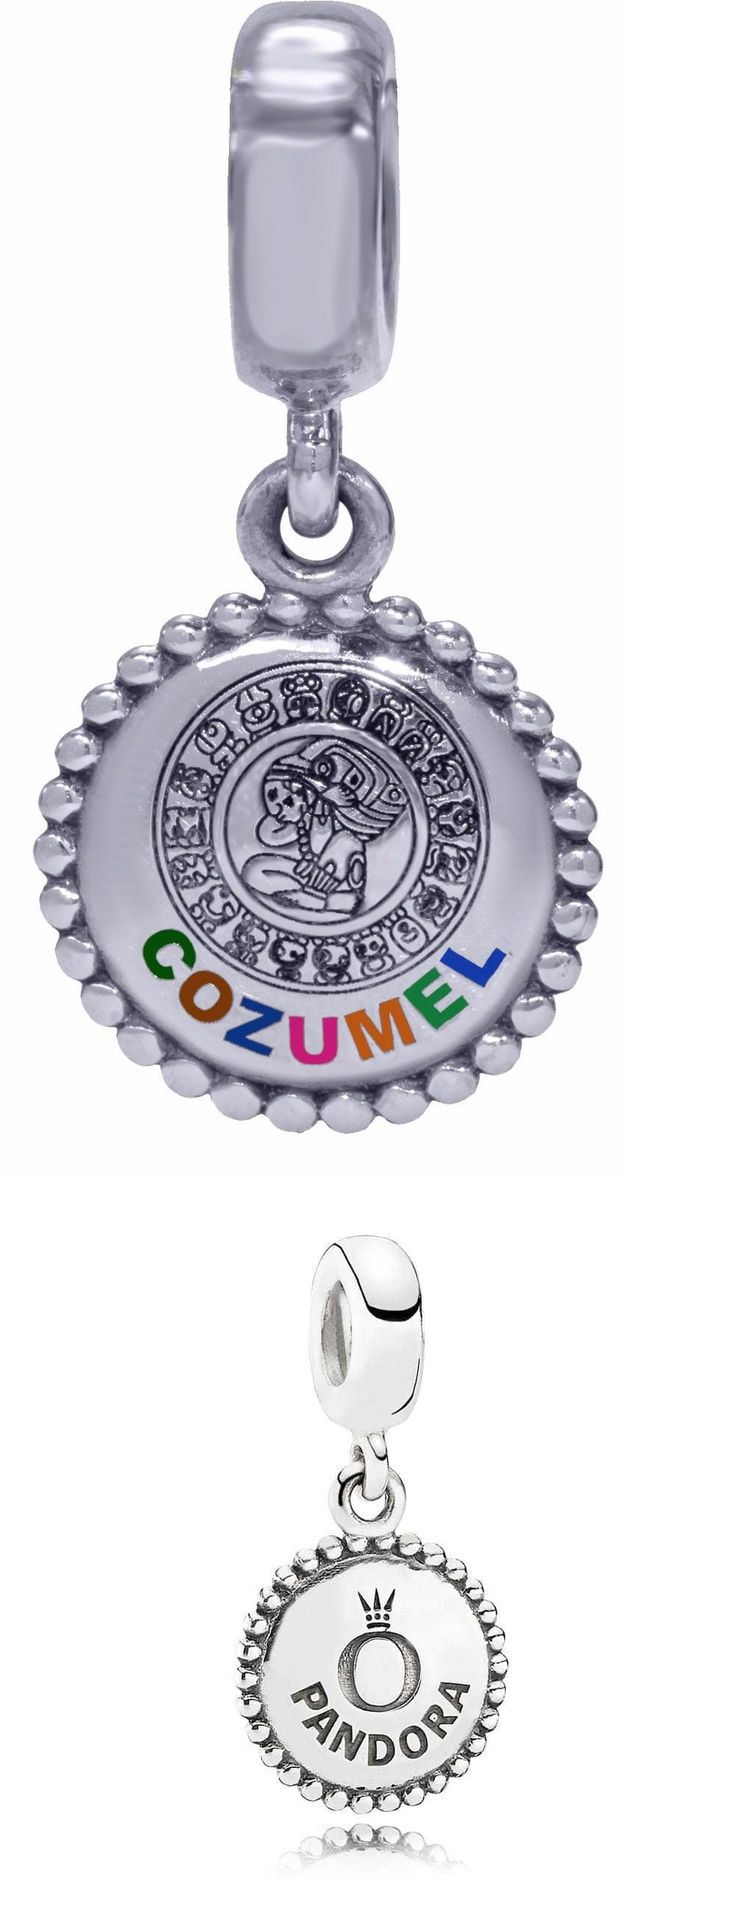 b8efc6bd8 Charms 134299 Authentic Pandora Cozumel, Mexico Charm With Mayan Calender  791169 - BUY ...